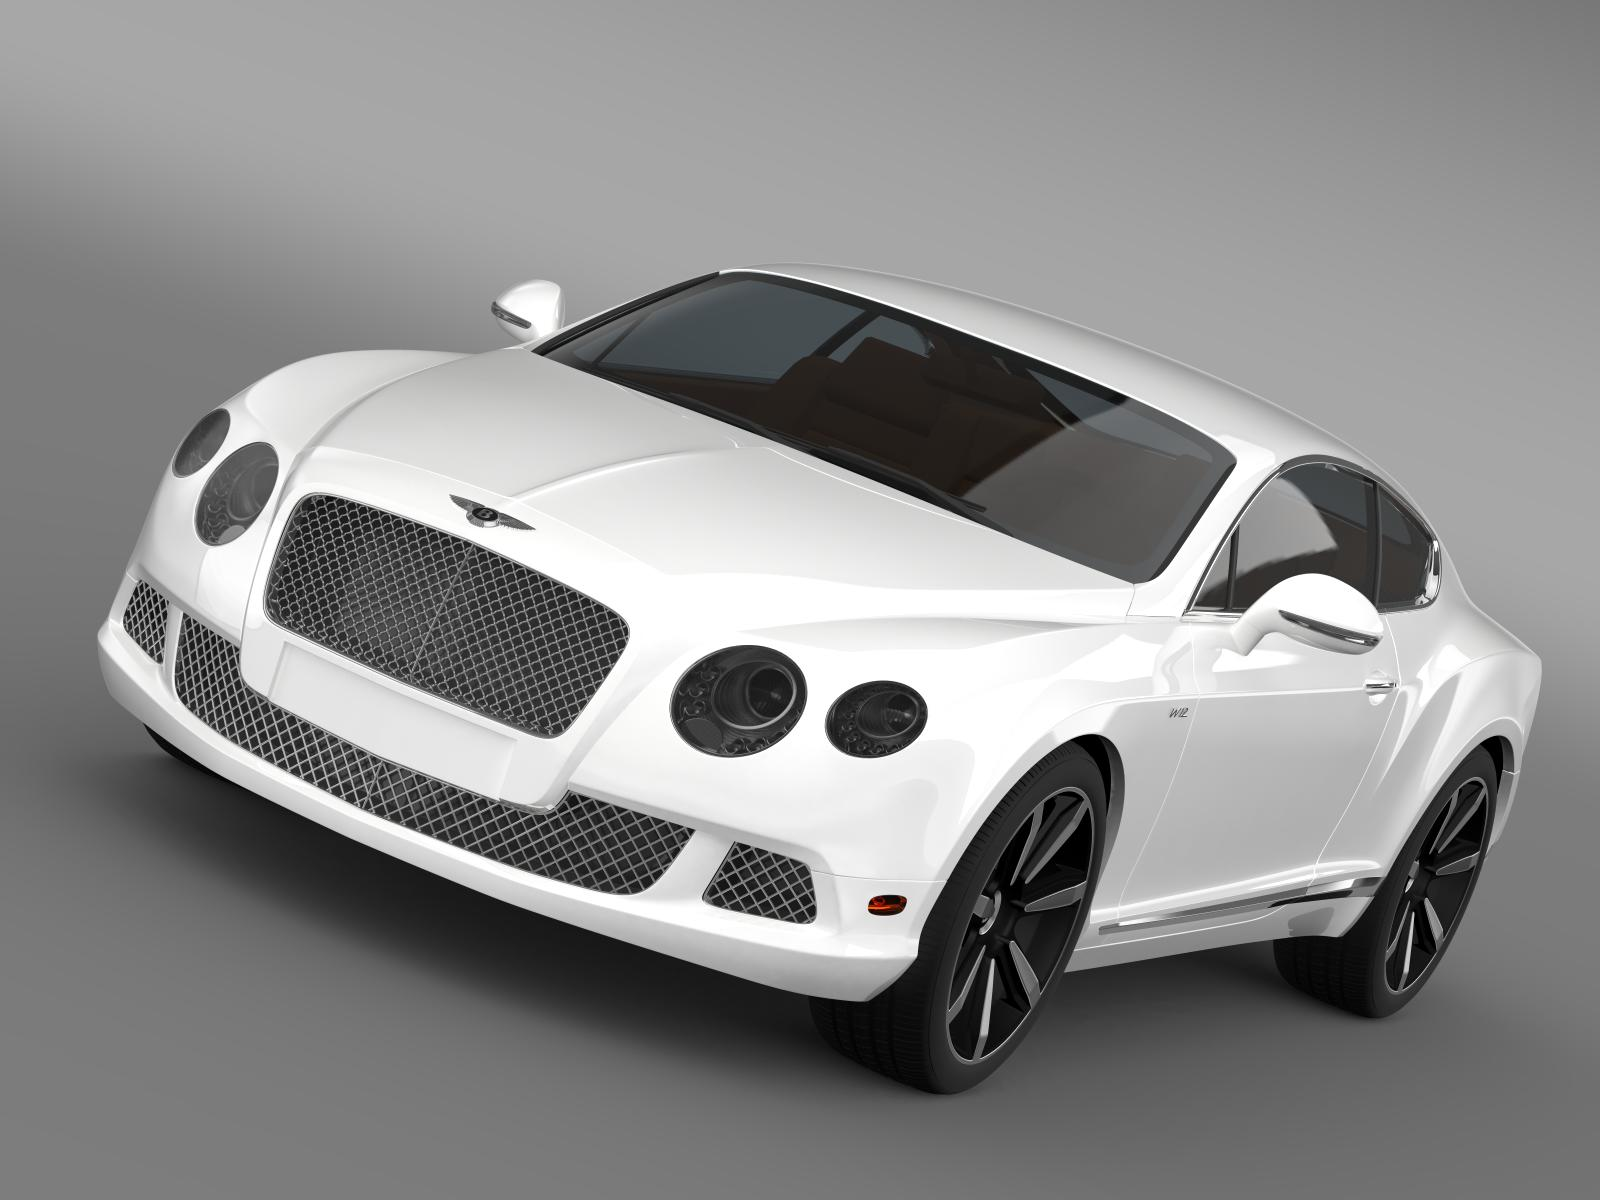 bentley continental gt speed le mans edition 2013 3d model 3ds max fbx c4d lwo ma mb hrc xsi obj 163518